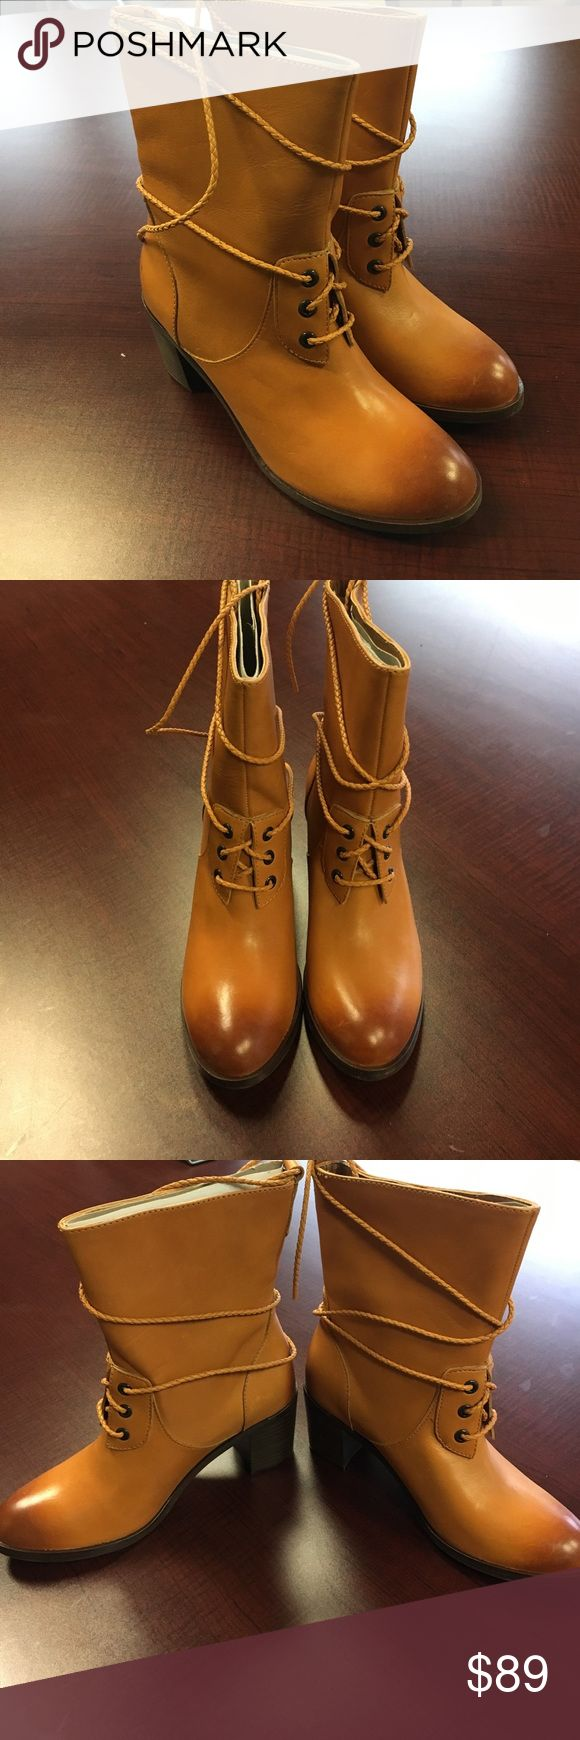 🔥Wolverine 1000 Mile Women heel tan leather boot Wolverine 1000 mile by Samantha Pleet women's tan leather heel boots. They have an amazing burnished toe with the laces that wrap around the boot which give them an amazing look. These are all size 7 and new without a box wolverine 1000 mile Shoes Heeled Boots